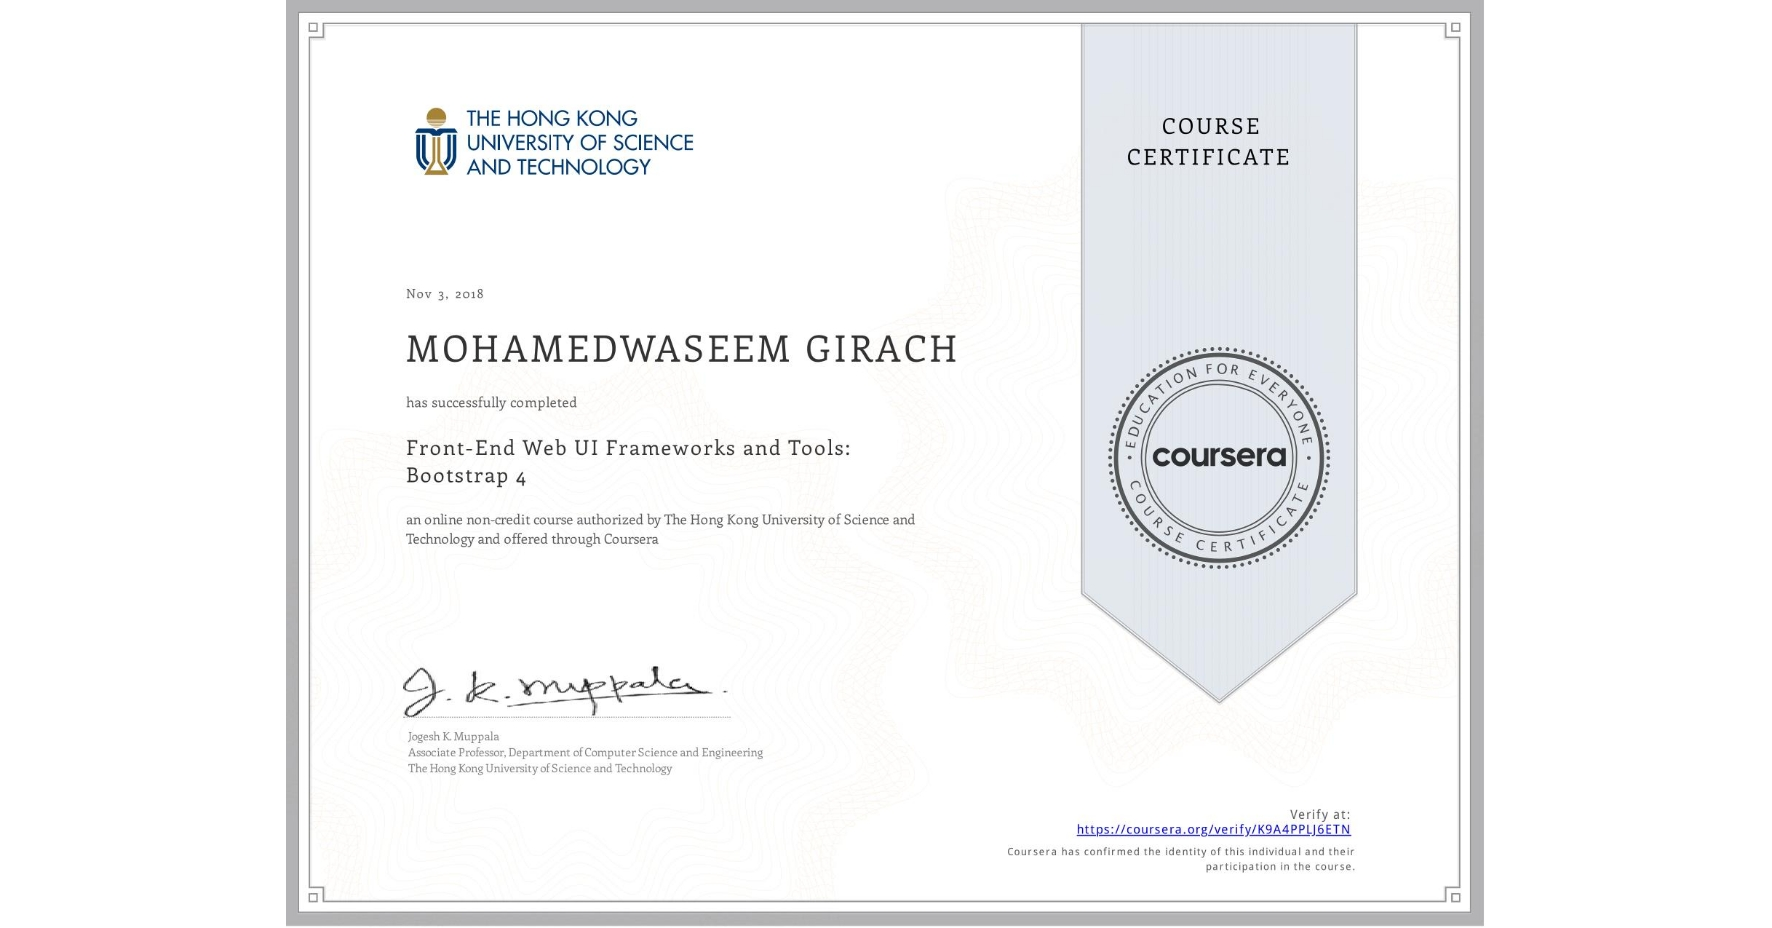 View certificate for MOHAMEDWASEEM GIRACH, Front-End Web UI Frameworks and Tools: Bootstrap 4, an online non-credit course authorized by The Hong Kong University of Science and Technology and offered through Coursera